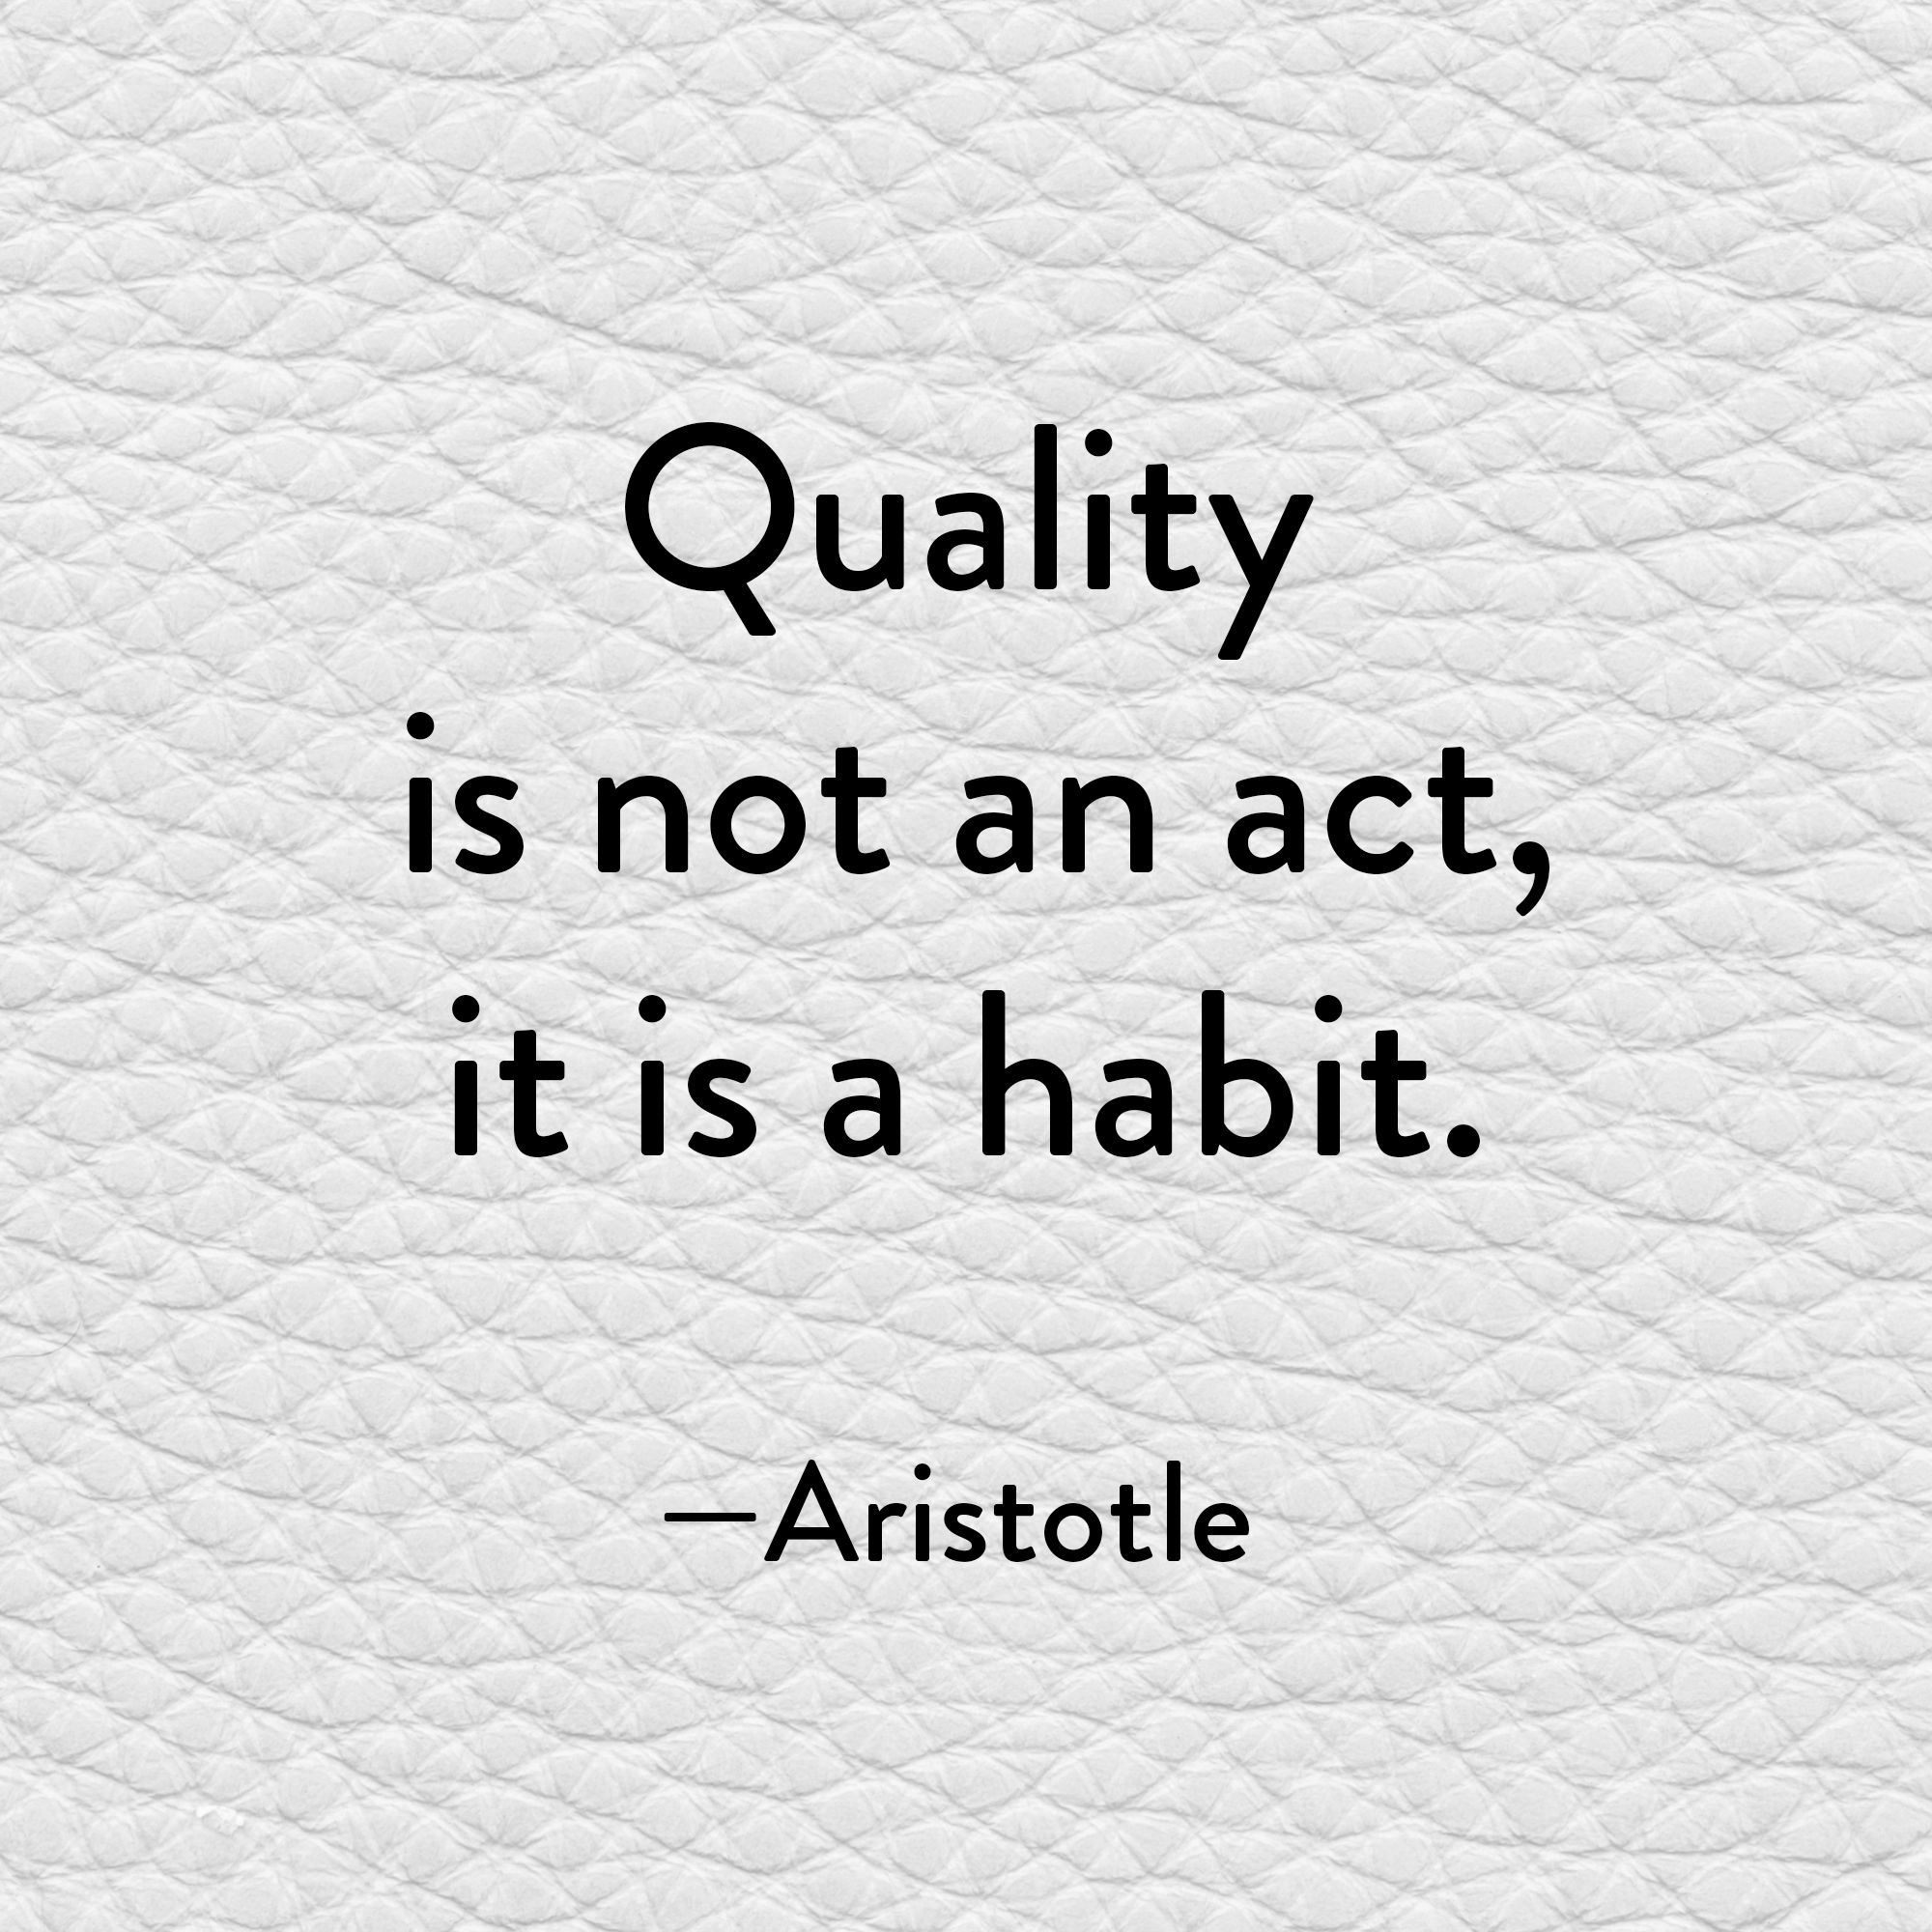 Aristotle Once Said Quality Is Not An Act It Is A Habit So